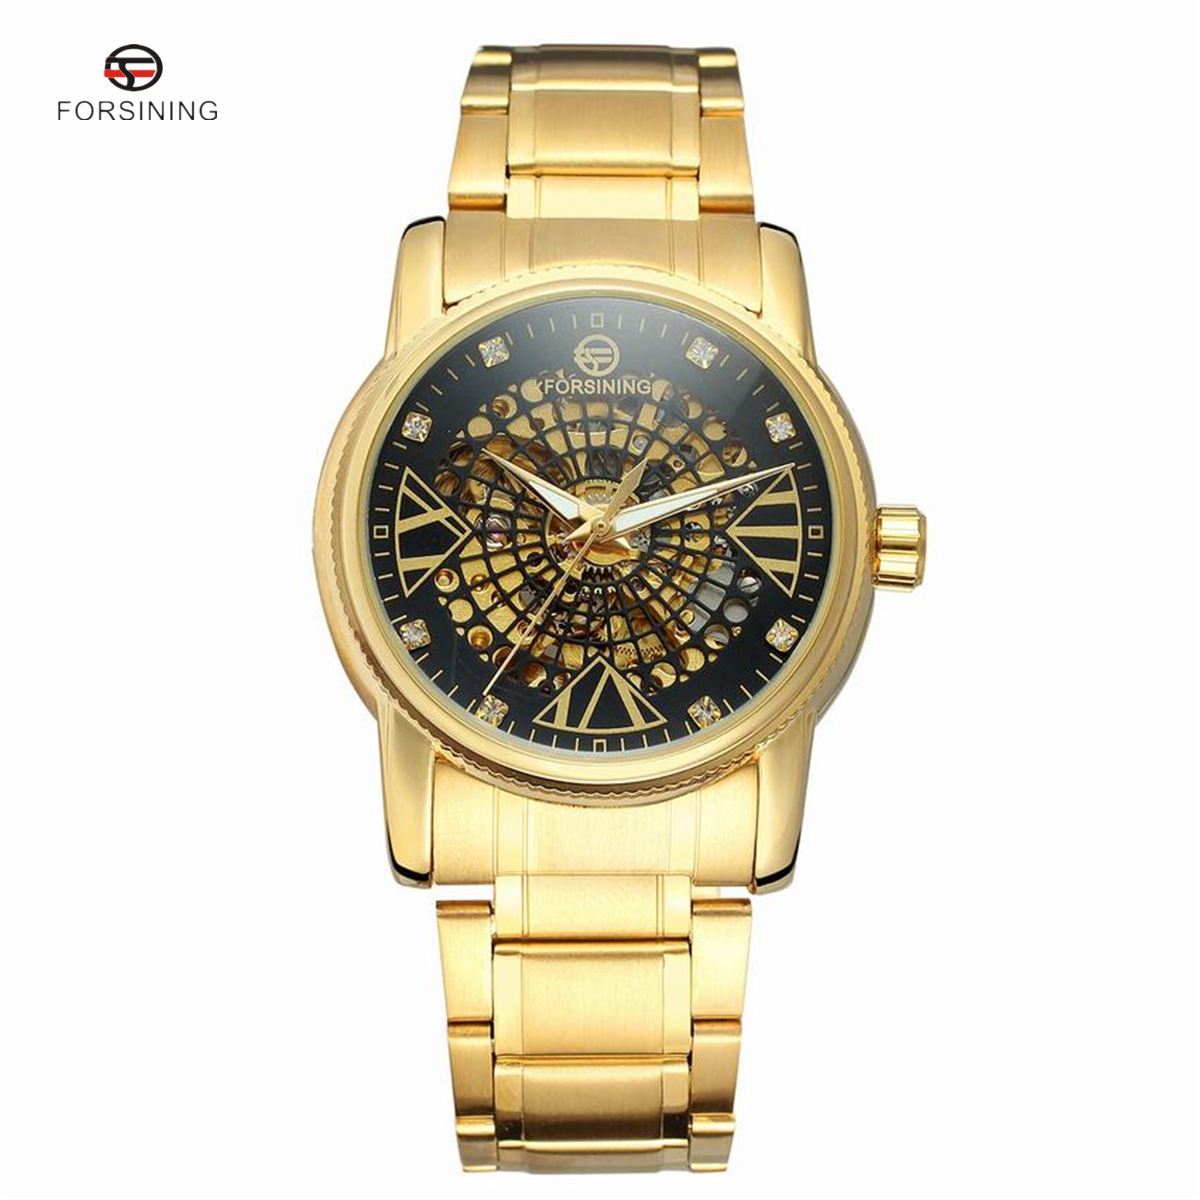 FORSINING New Men Male Winner Brand Mechanical Watch Steel Automatic Stylish Classic Skeleton Steampunk Wristwatch Gift forsining men s watch vogue skeleton mechanical leather analog classic wristwatch color silver fsg8090m3